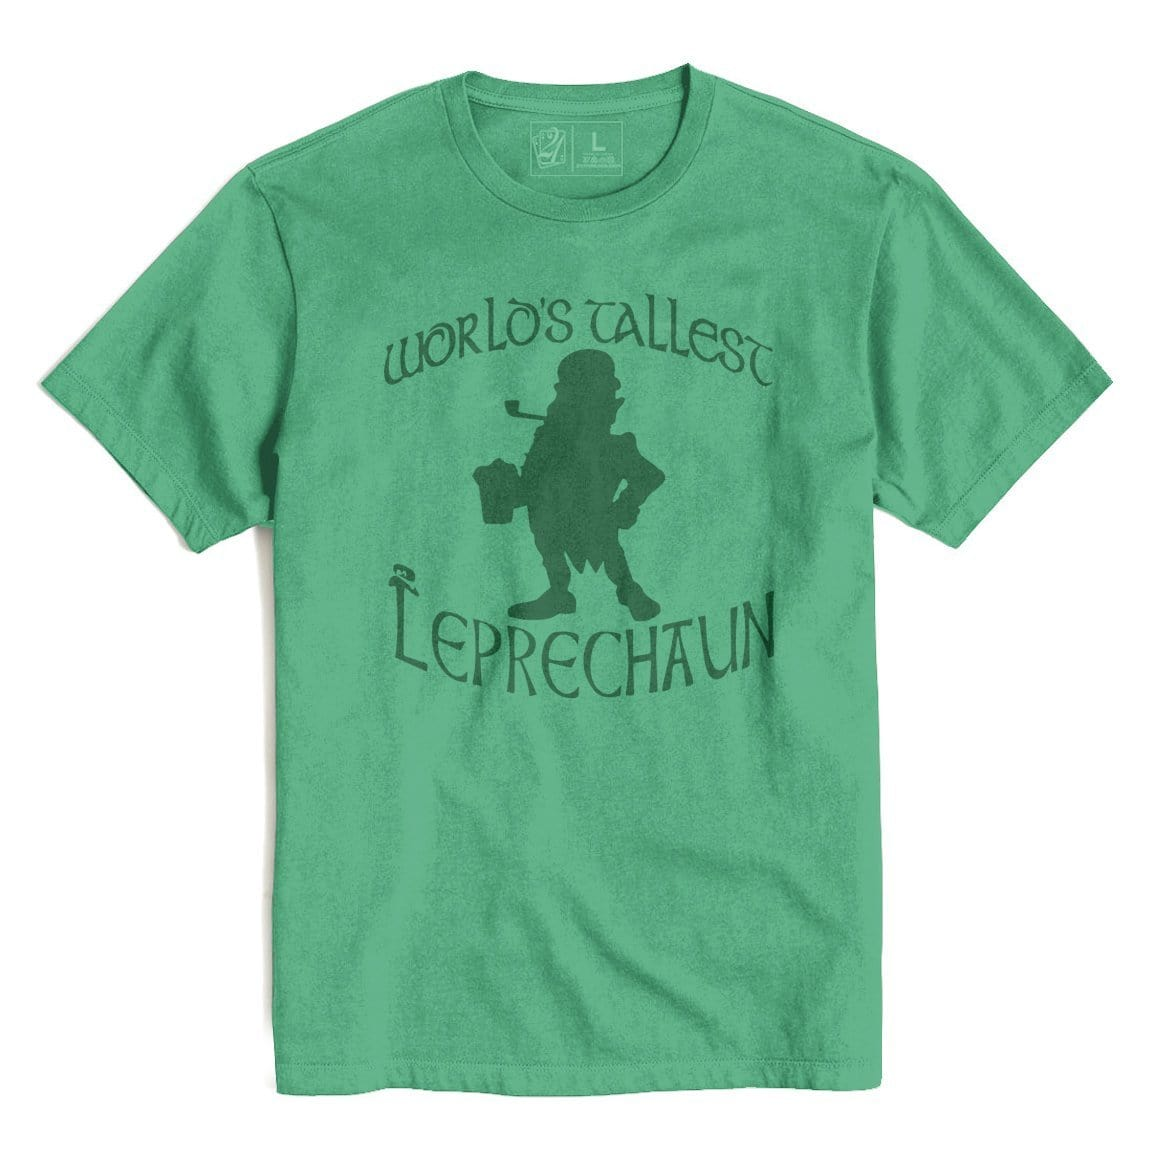 WORLDS TALLEST LEPRECHAUN St. Patrick's T's And Crews